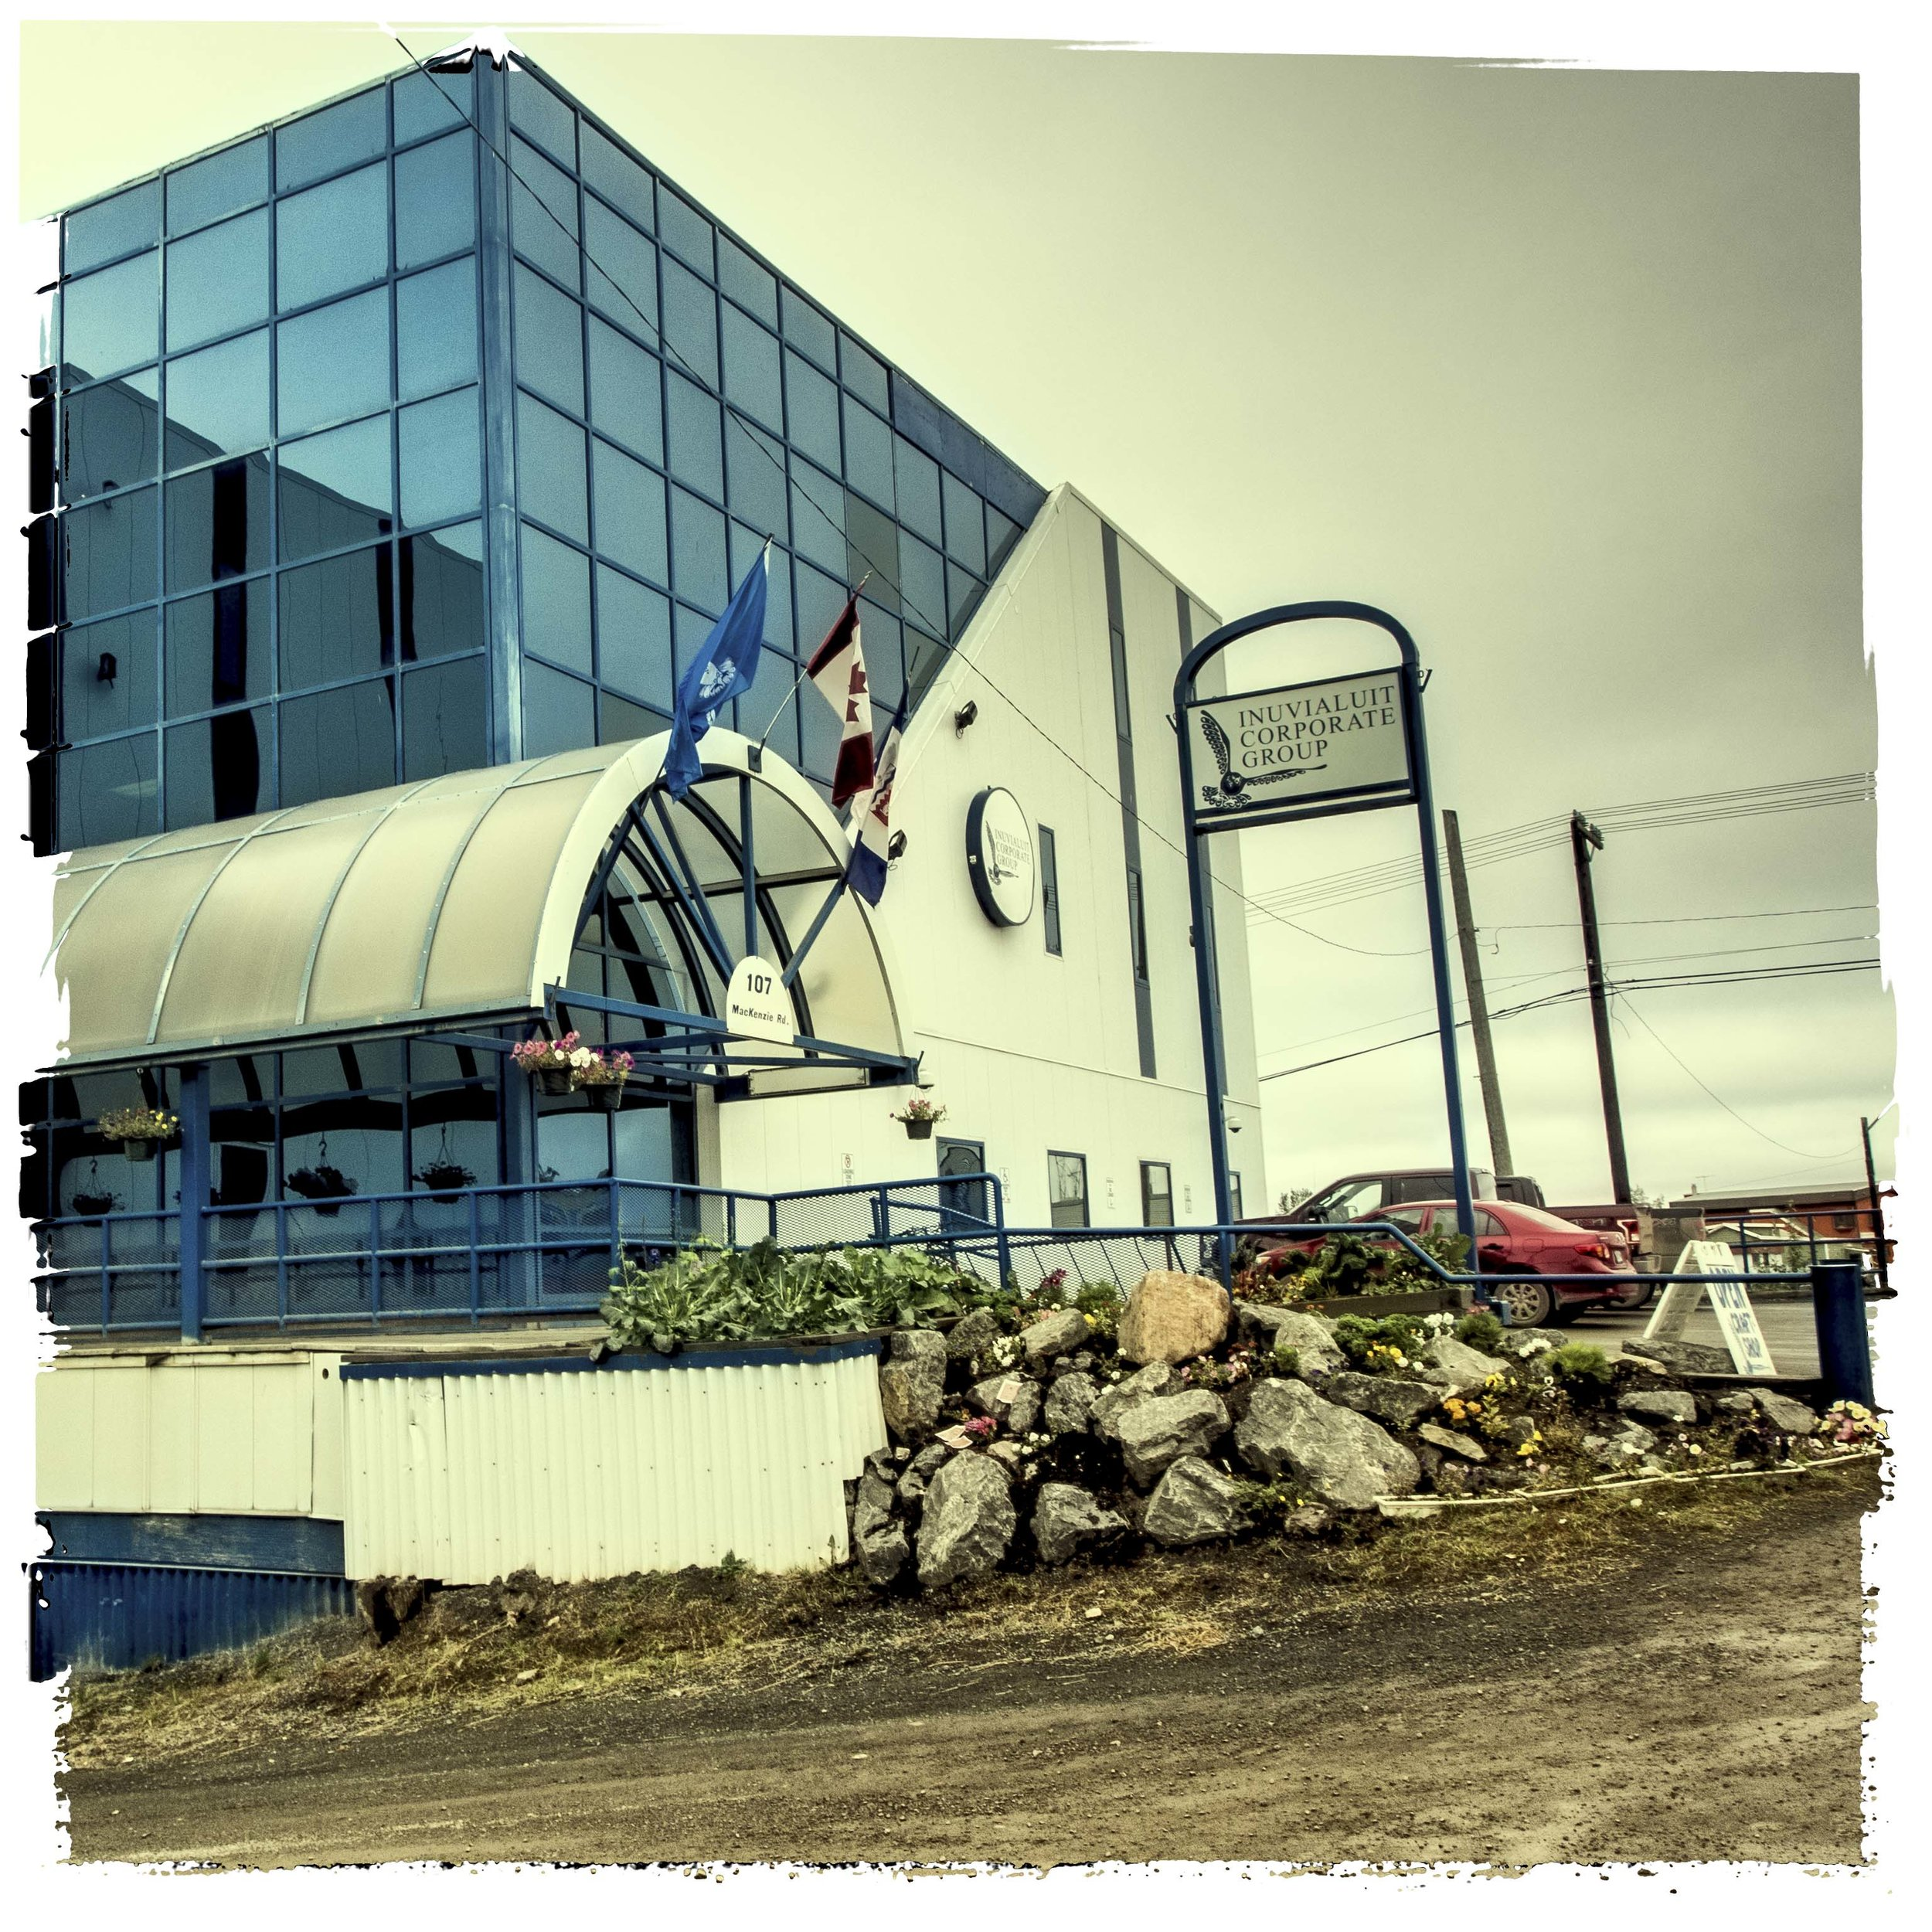 Streetscapes Inuvik: Series of 30